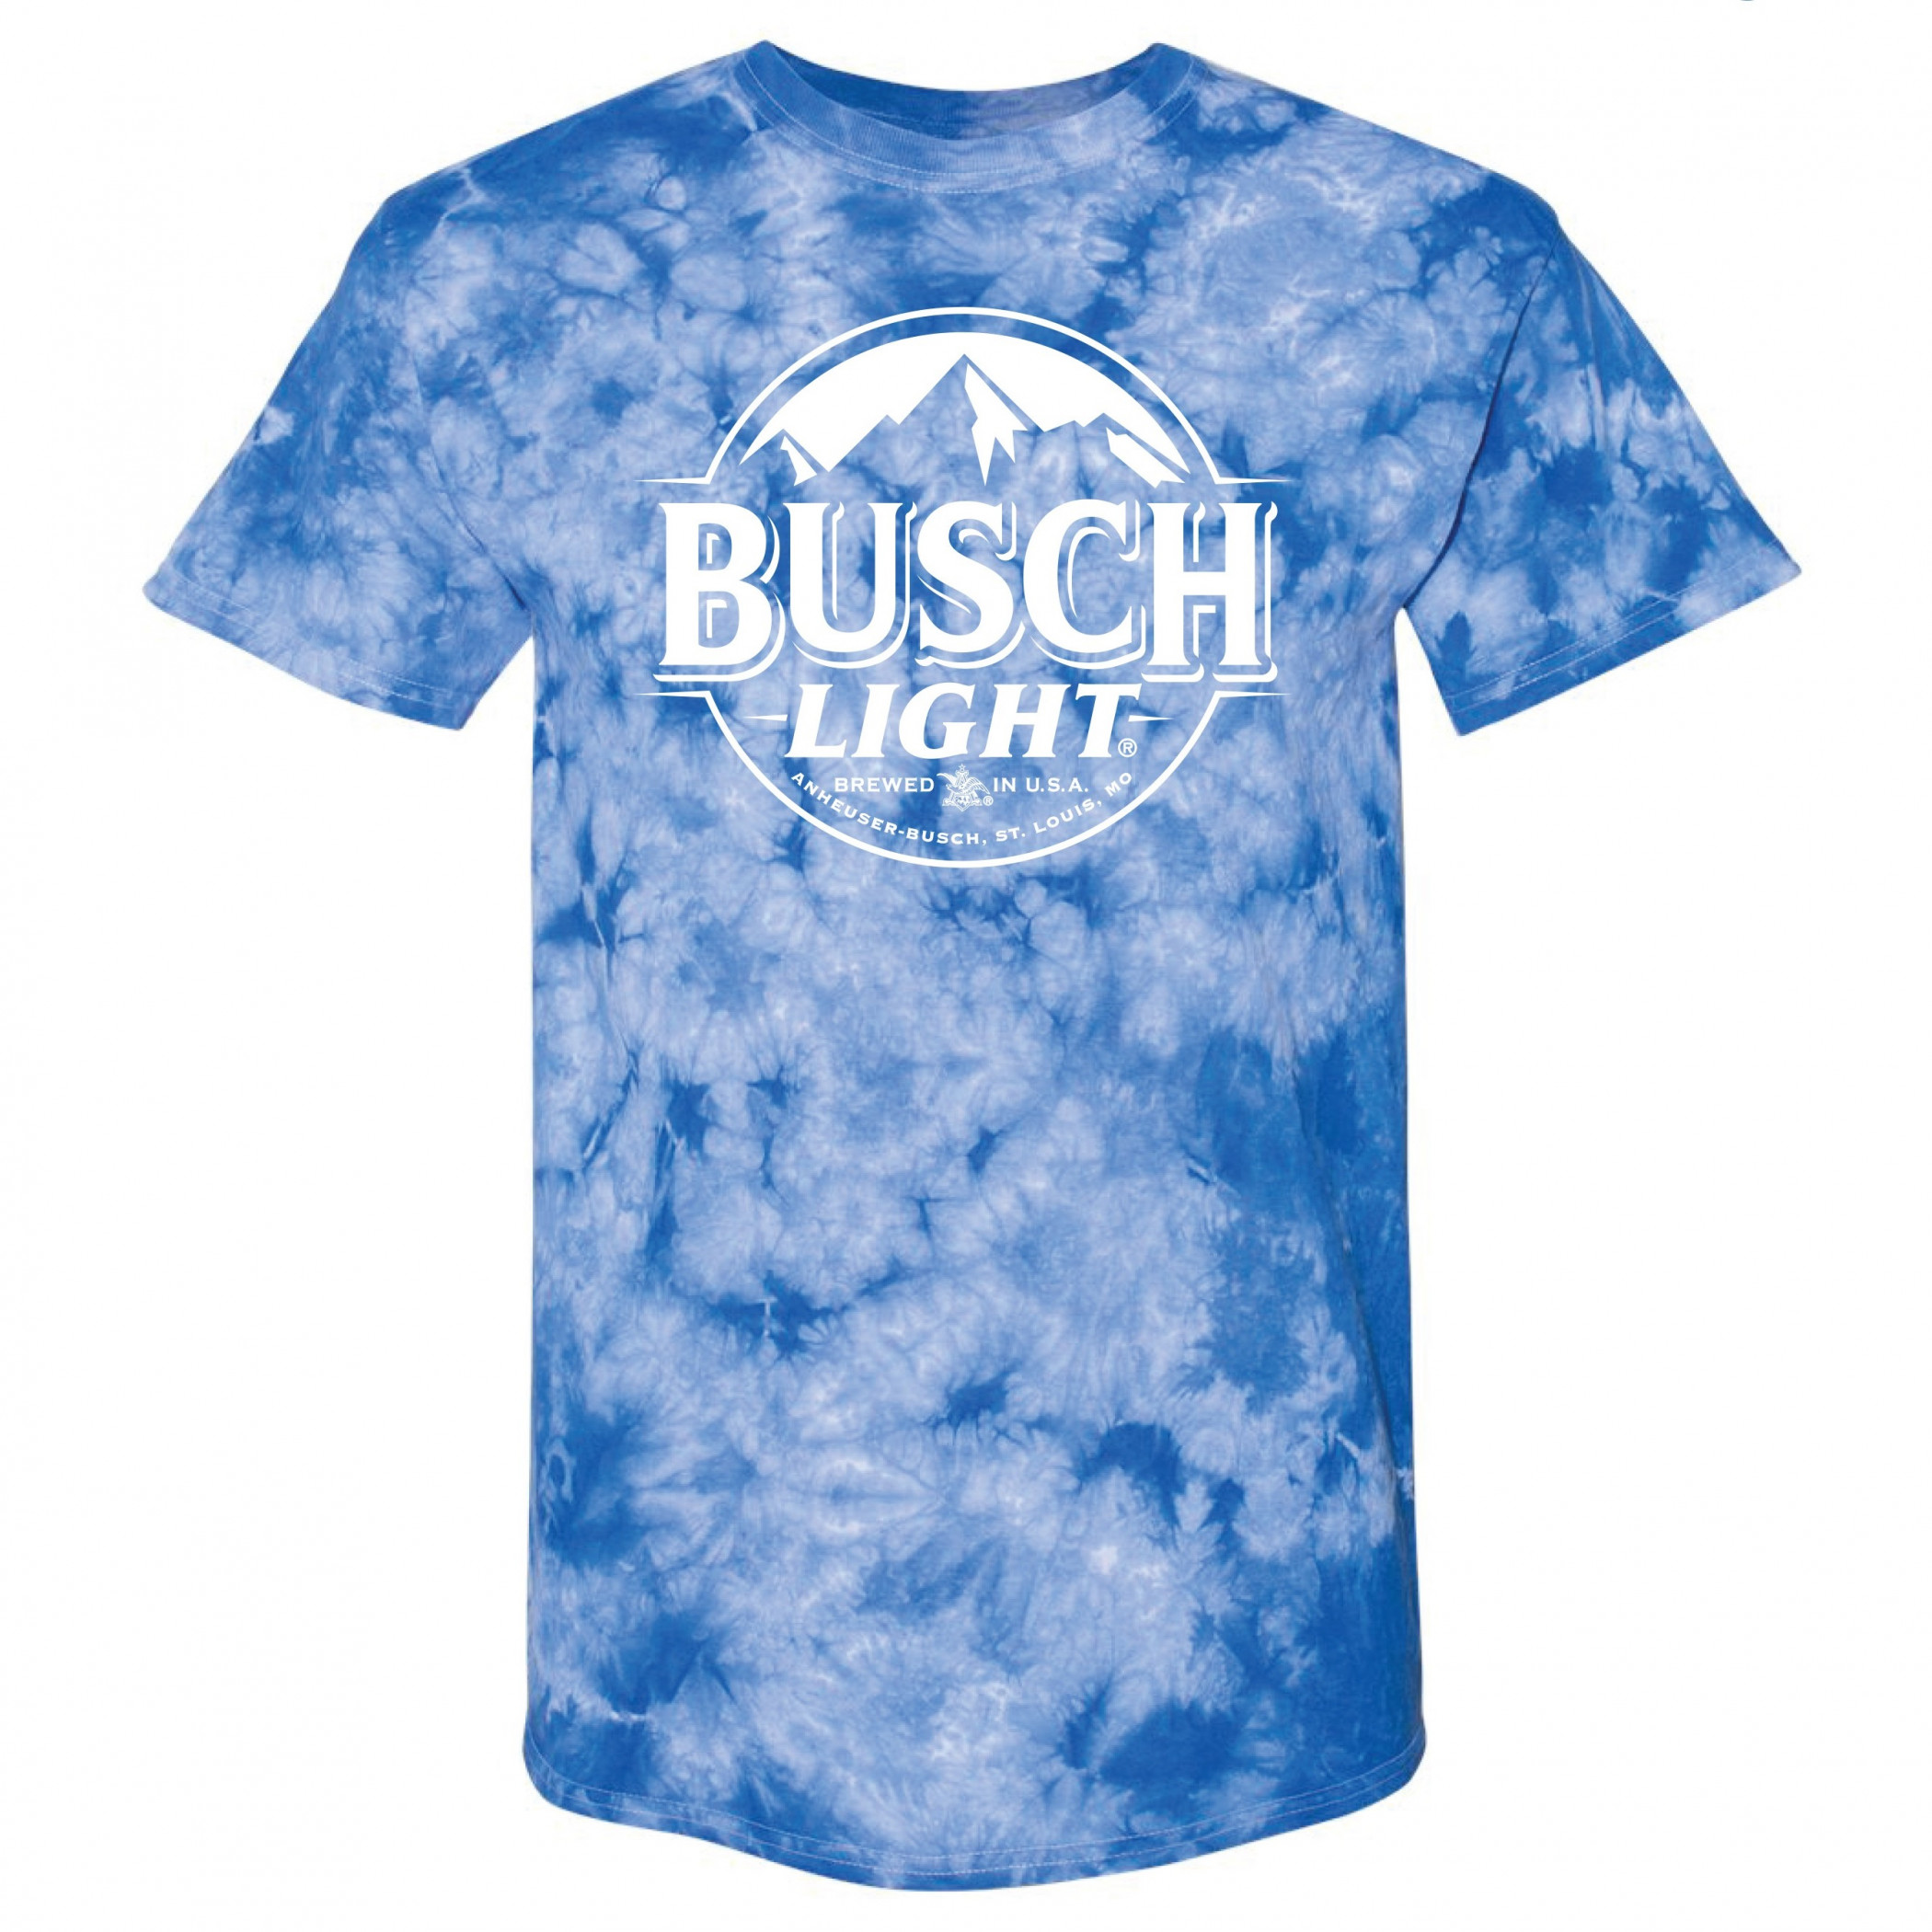 Busch Light Tie Dye T-Shirt